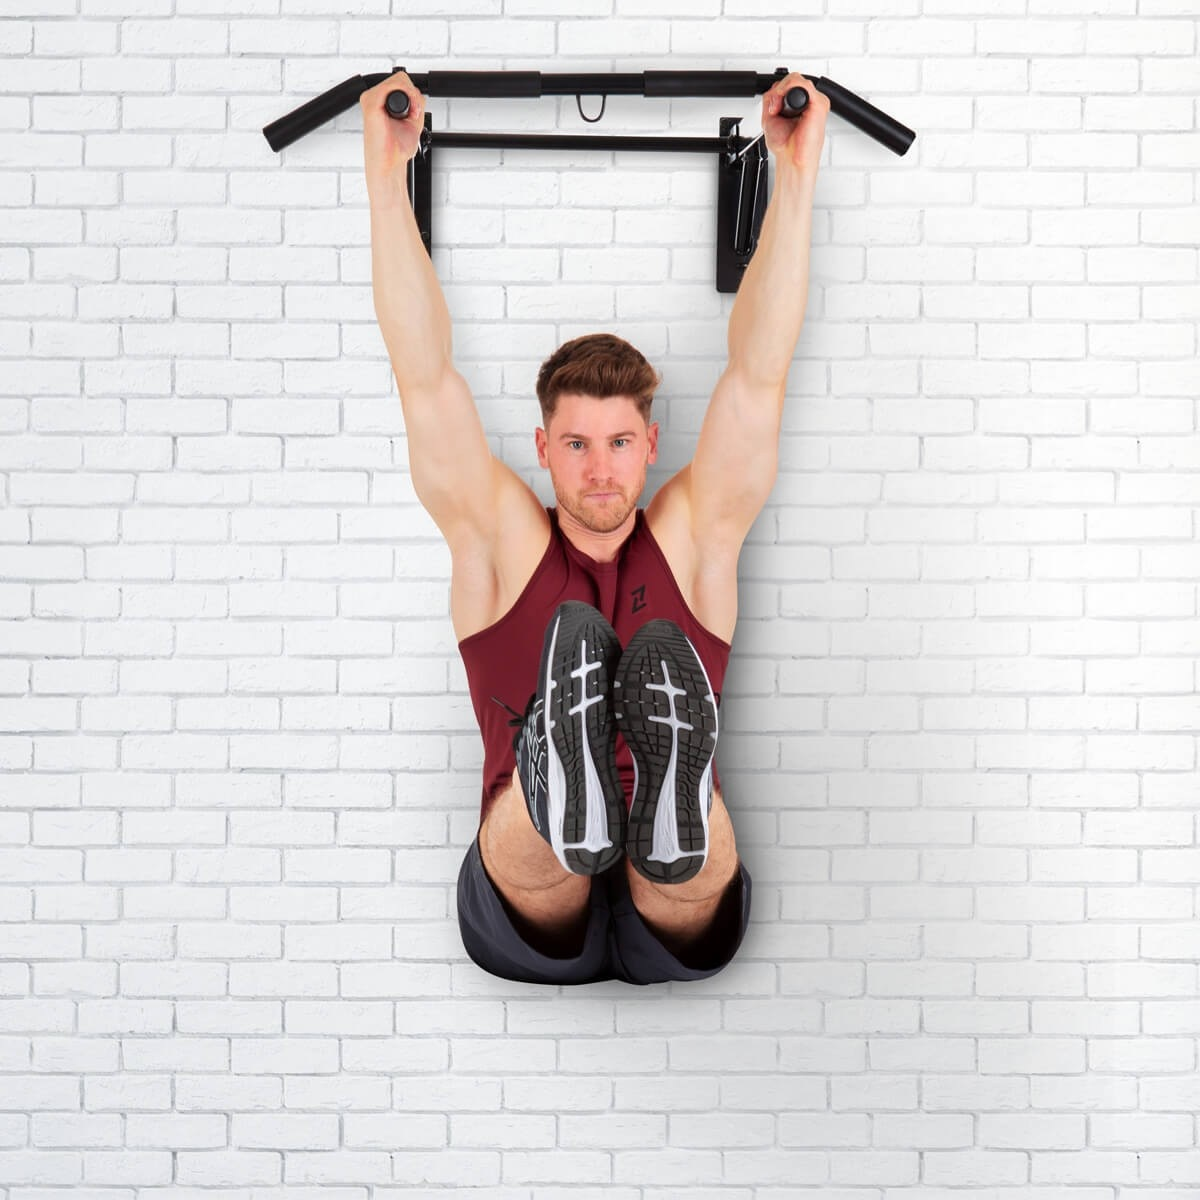 Hammer Optrekstang - met lifting hooks en push-up bars